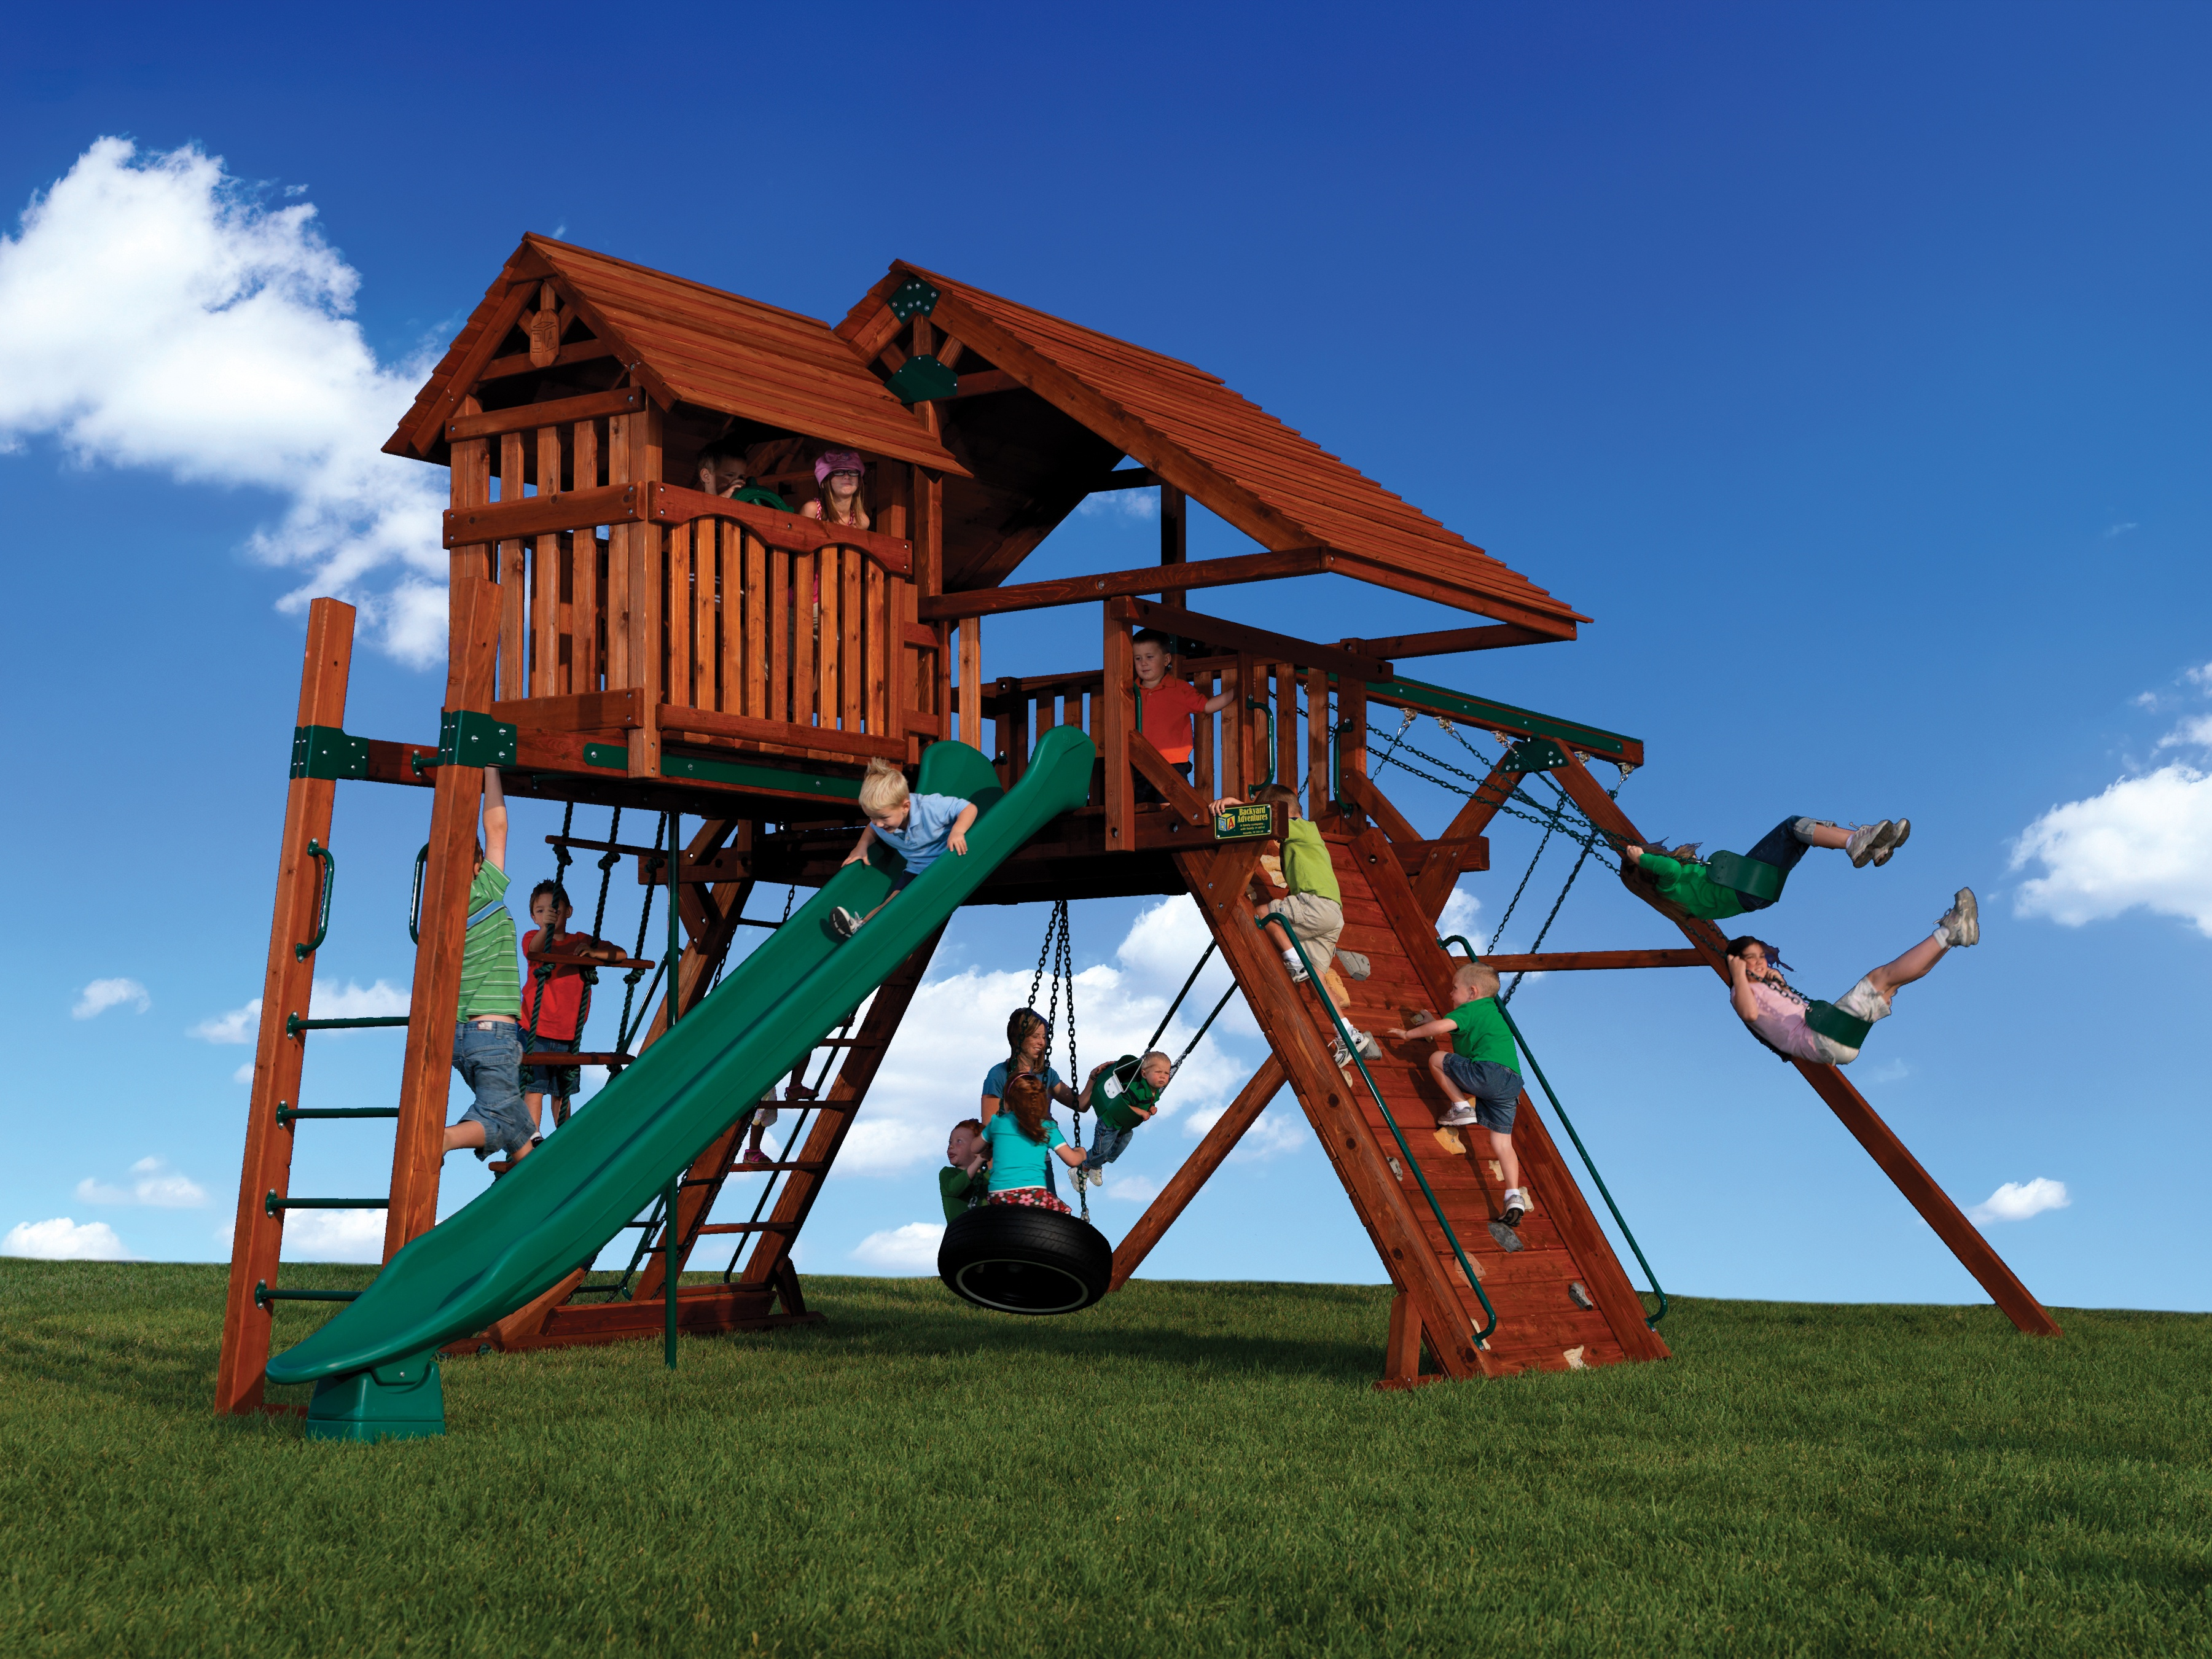 Peak Series Playsets for Unlevel Yards